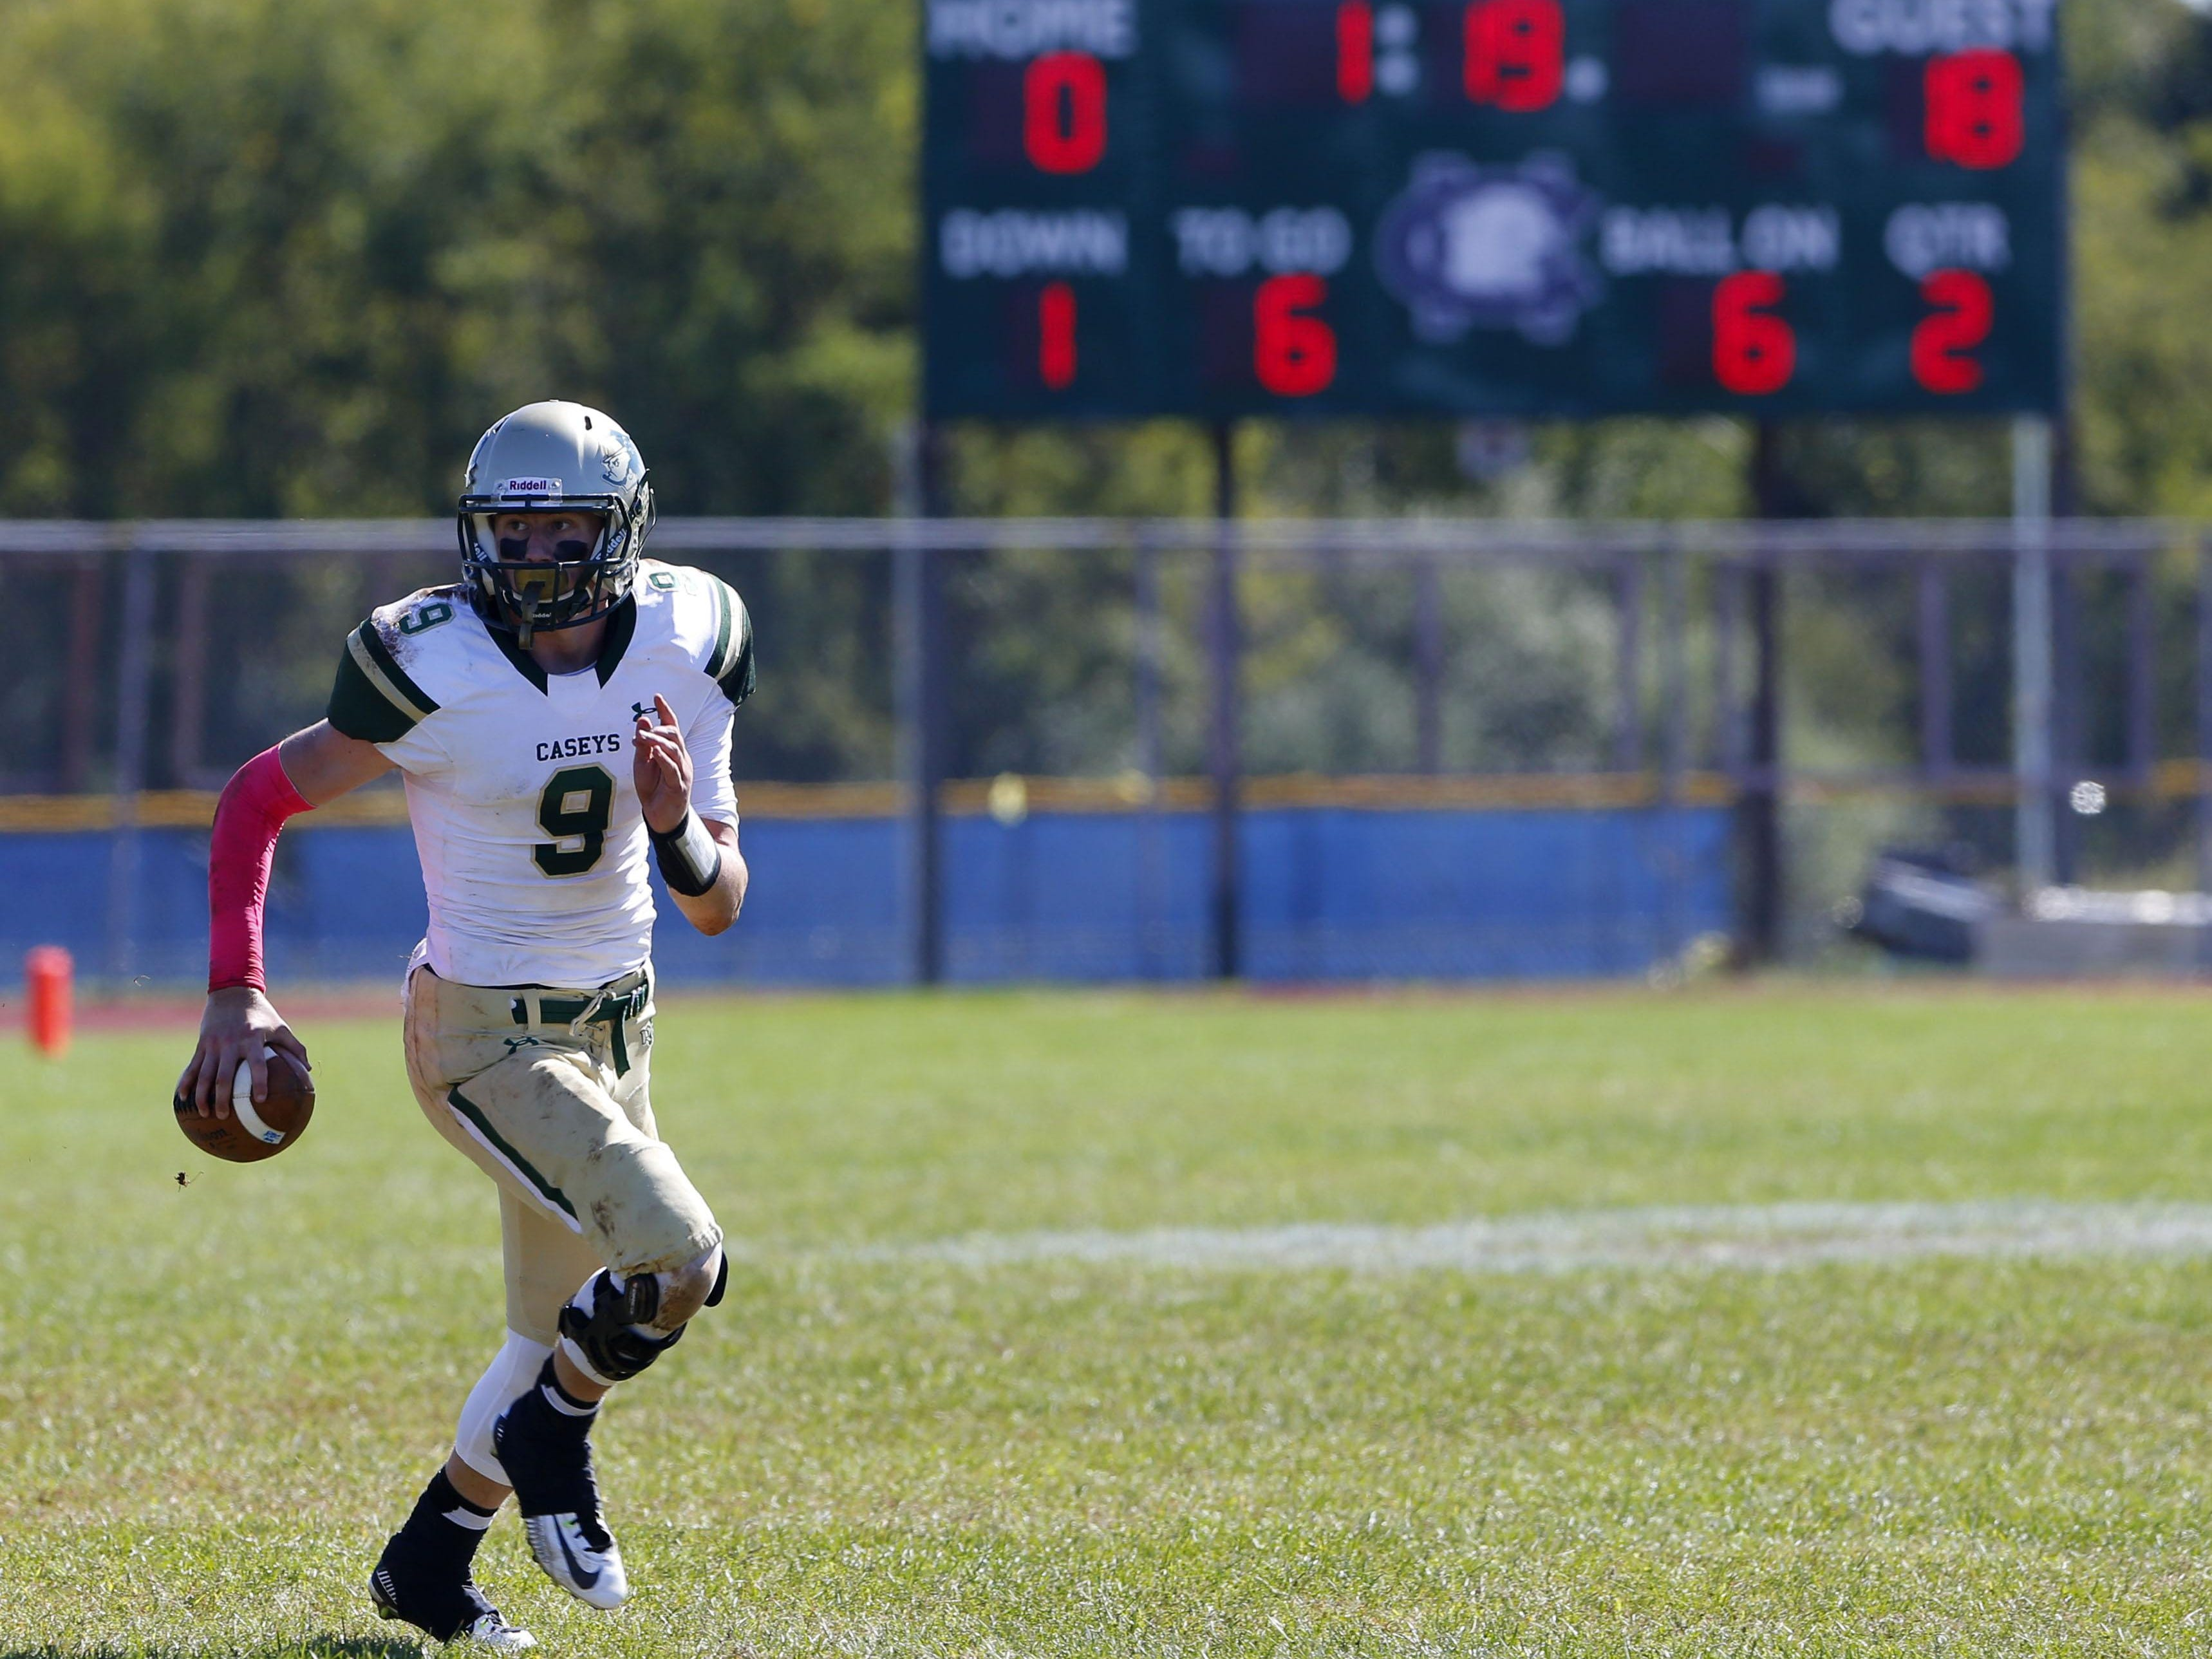 Eddie Hahn (9) of Red Bank Catholic looks for a receiver during game against Colts Neck at Colts Neck High School, Colts Neck,NJ. Saturday, October 10, 2015.